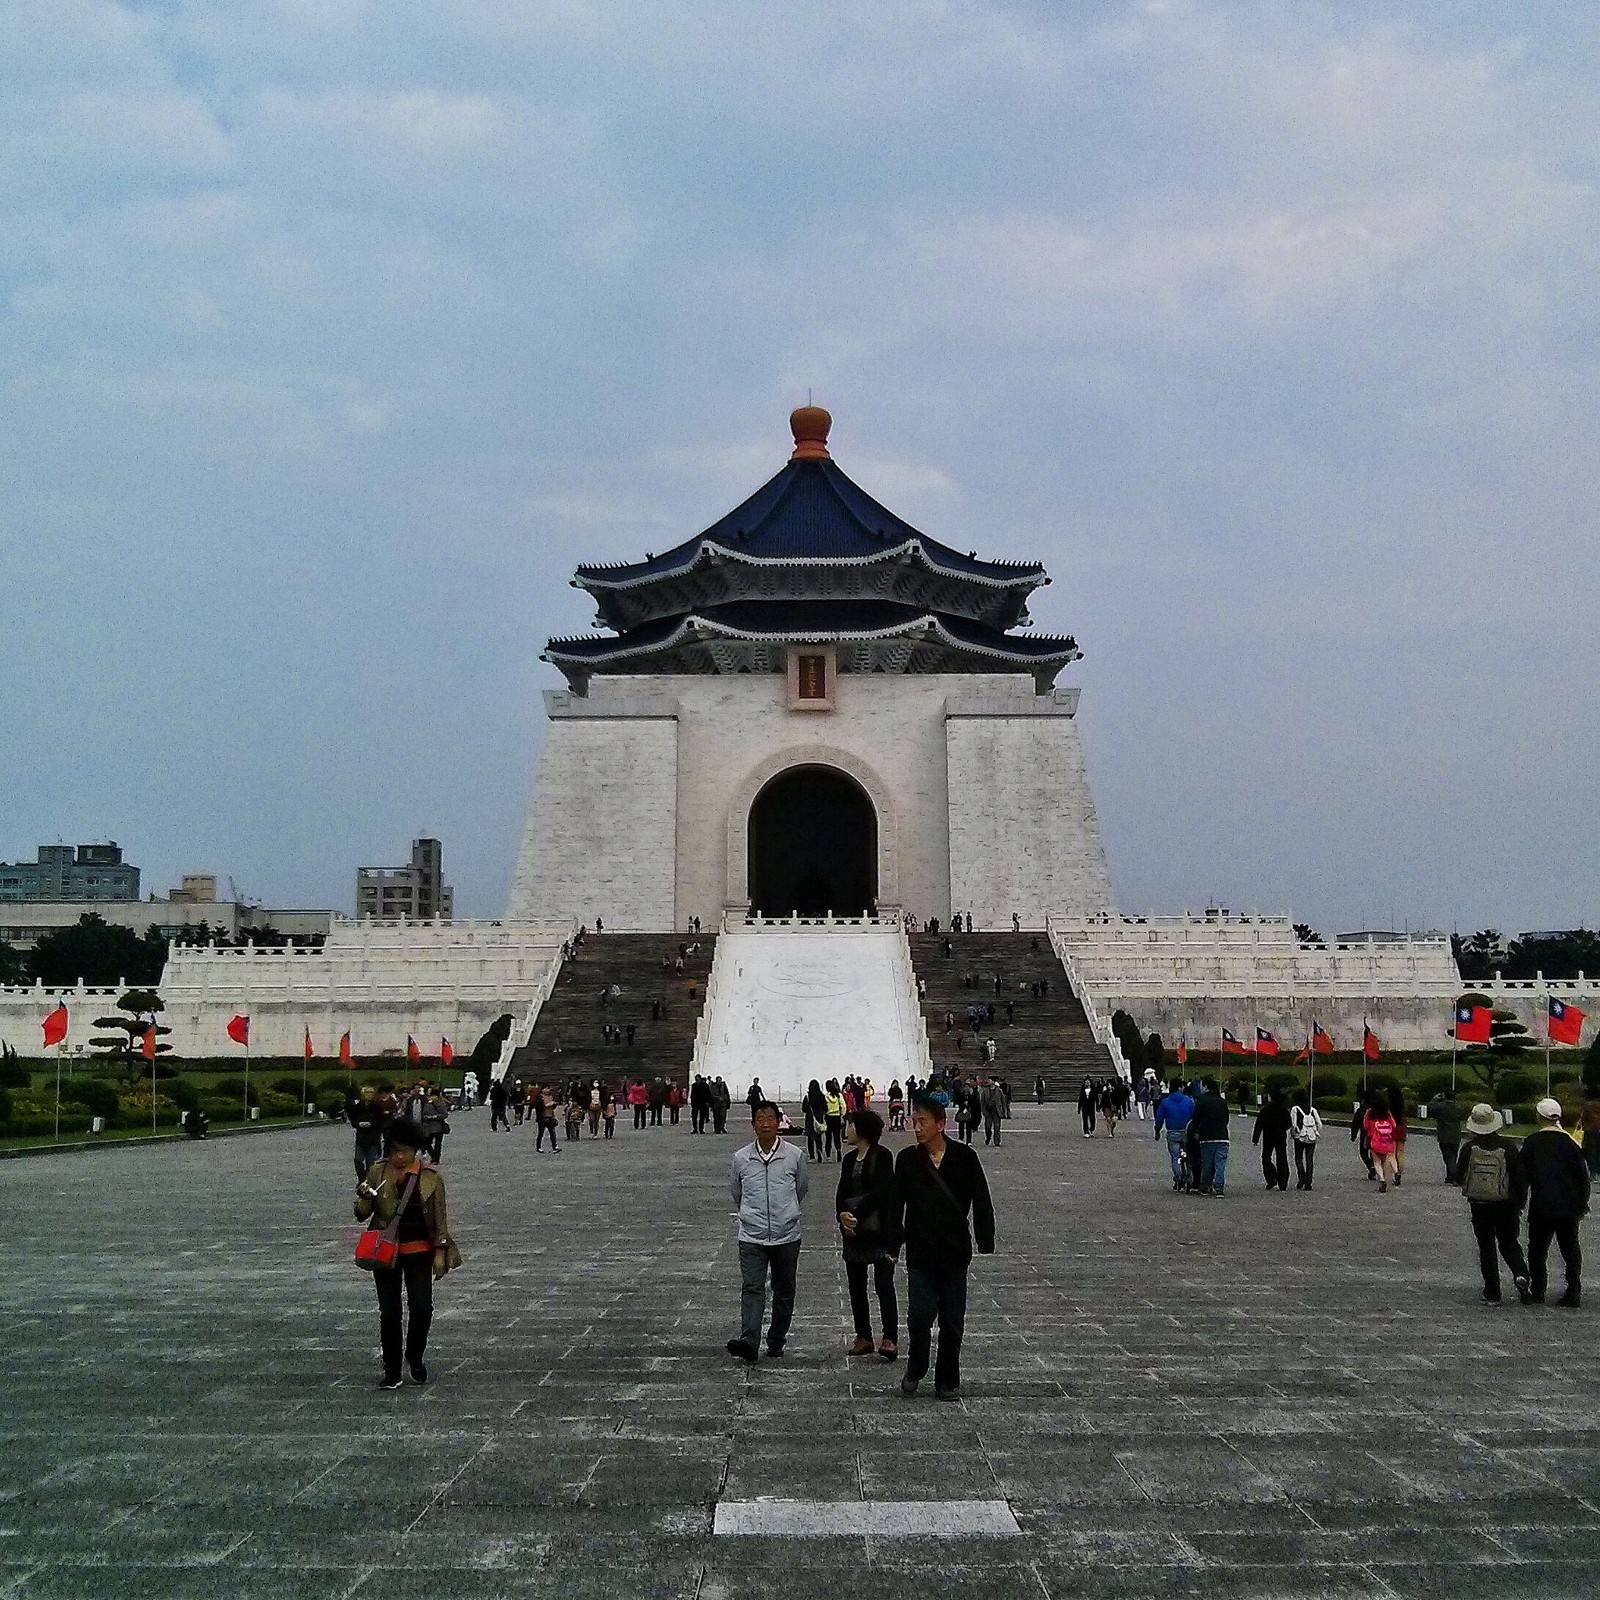 Visitors at Chiang Kai Shek Memorial Hall in the winter